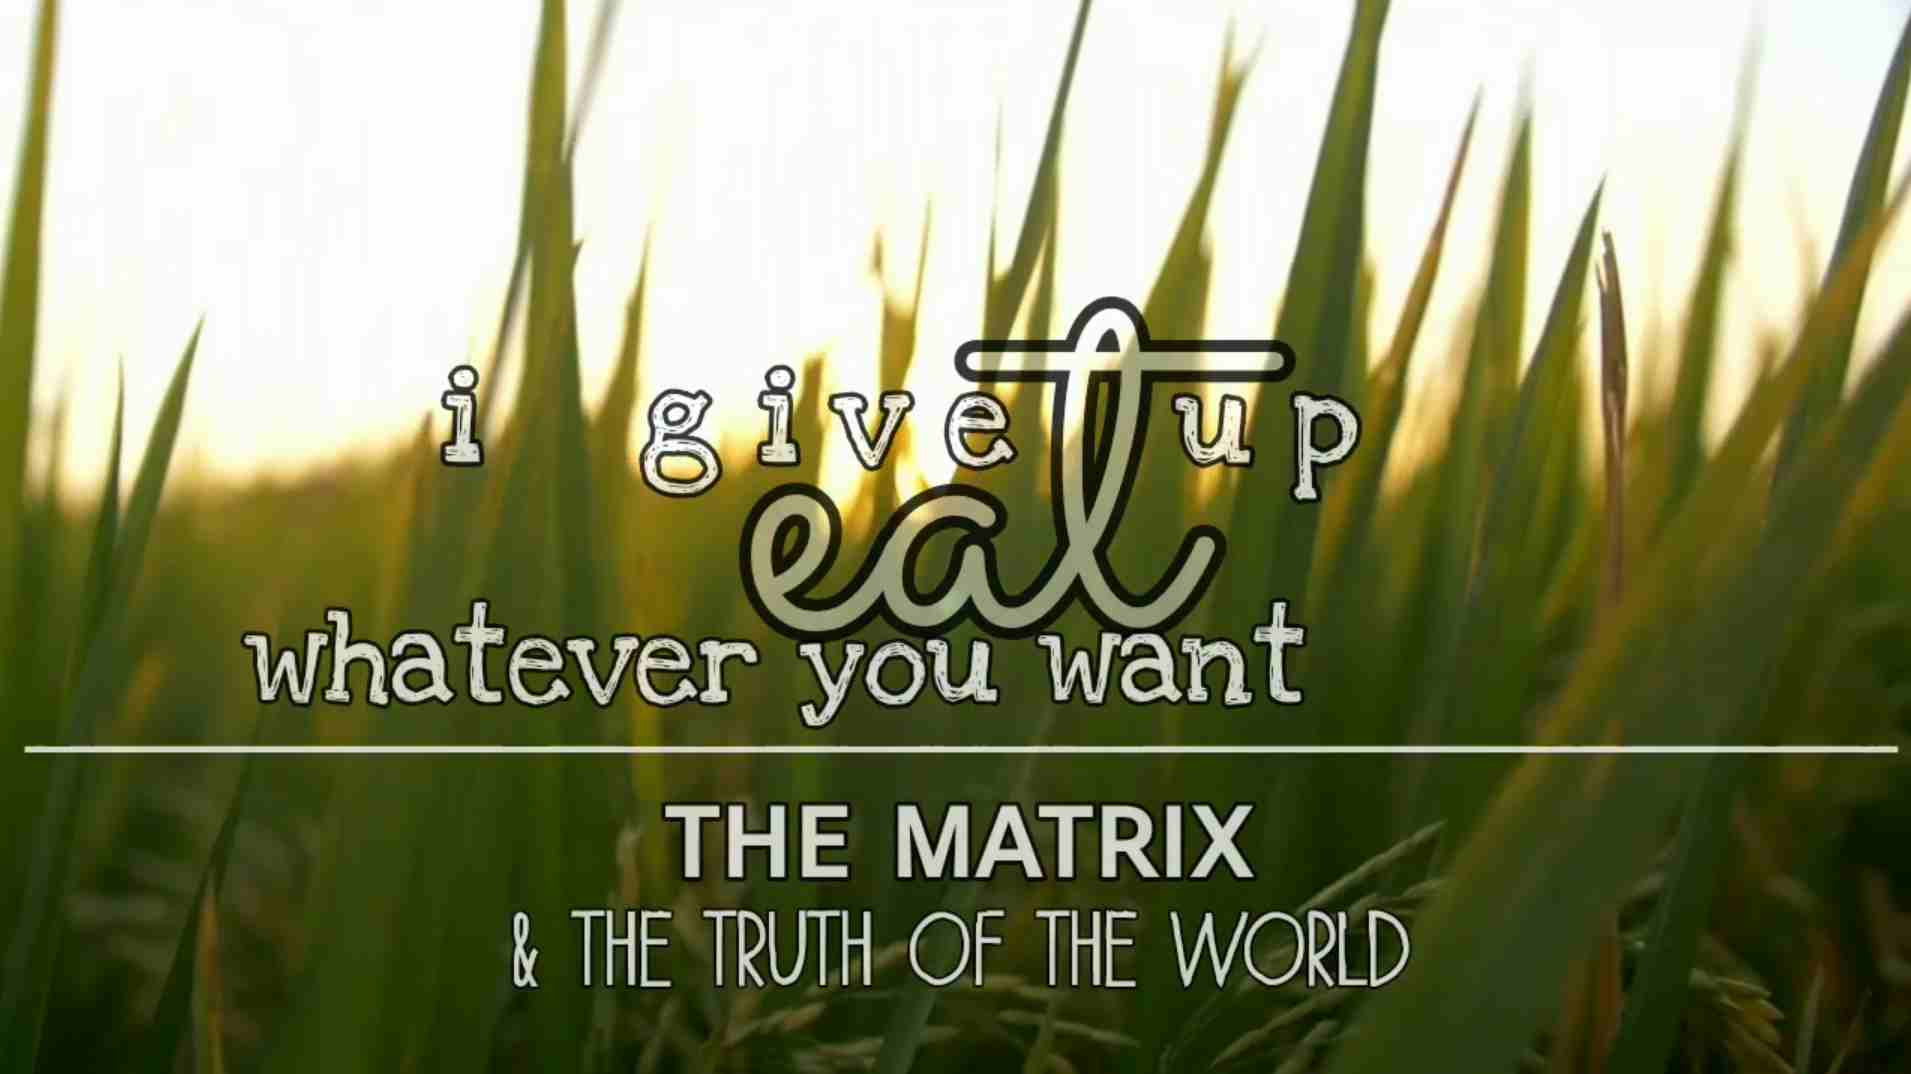 I Give Up. Eat Whatever You Want: The Matrix & the Truth of the World (2020)